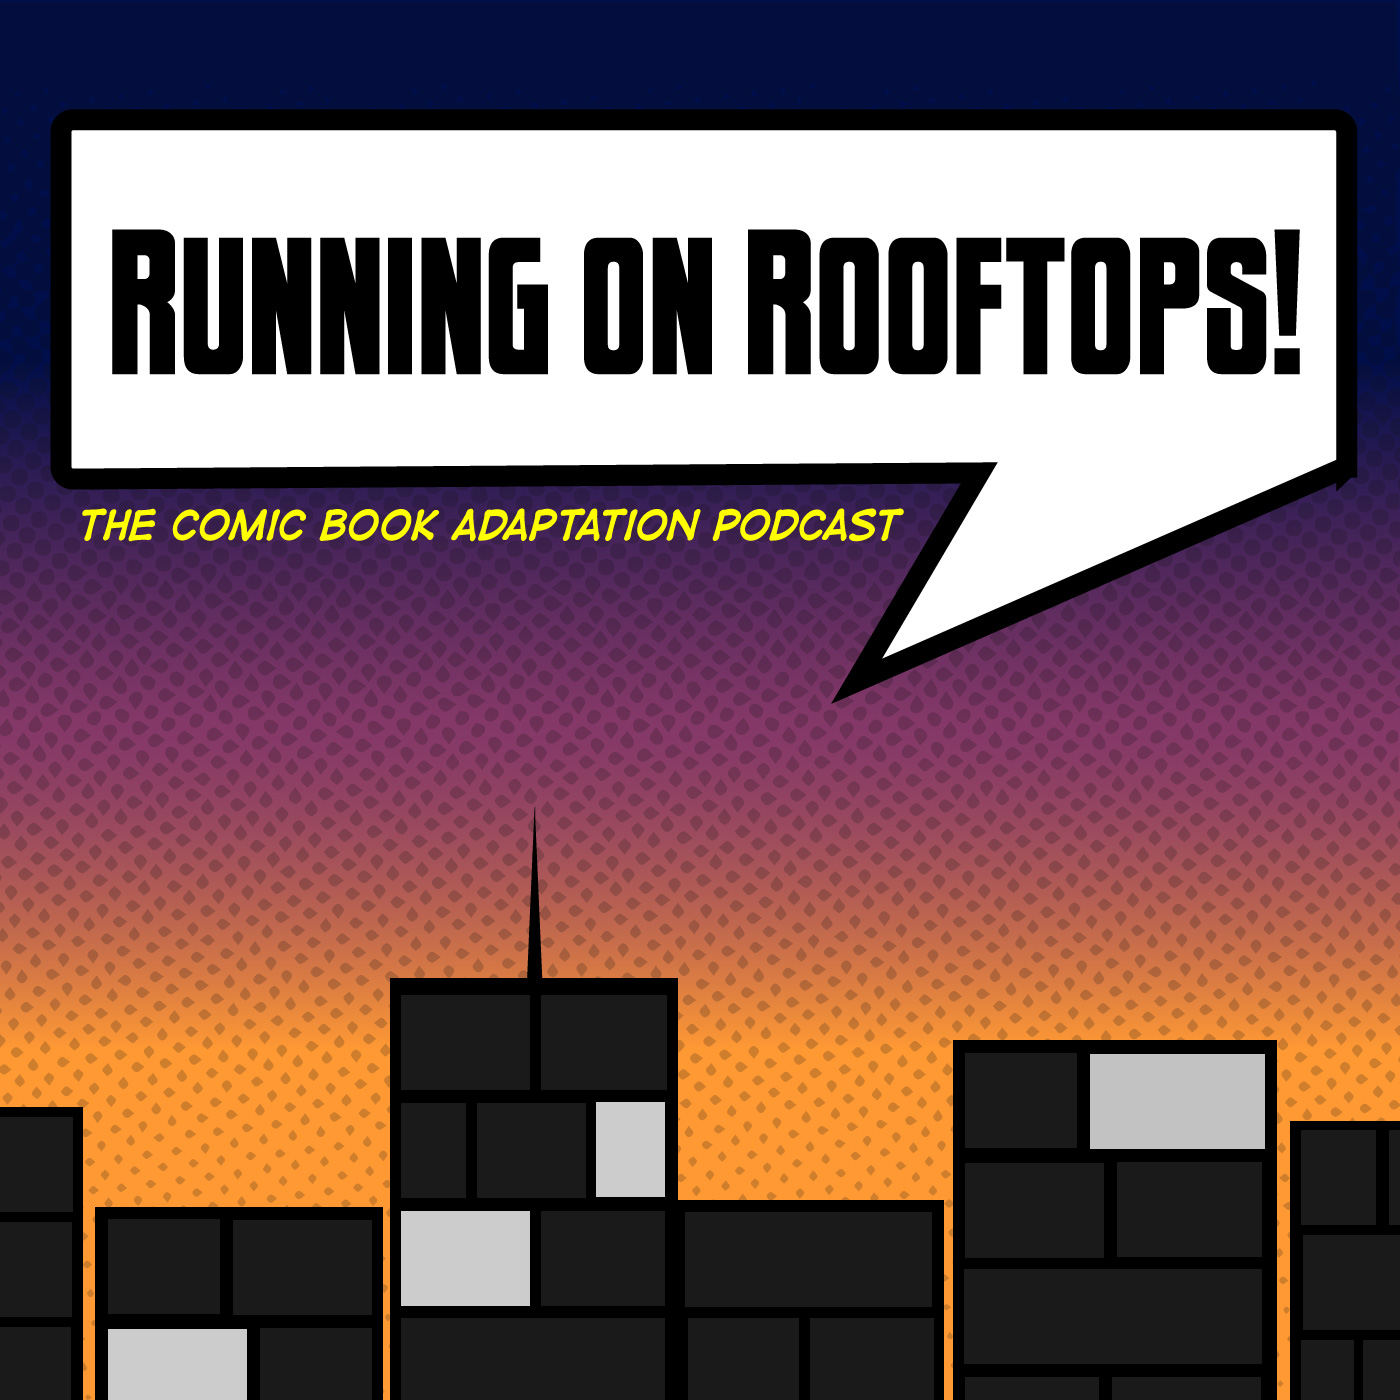 Running on Rooftops: The Comic Book Adaptation Podcast show art